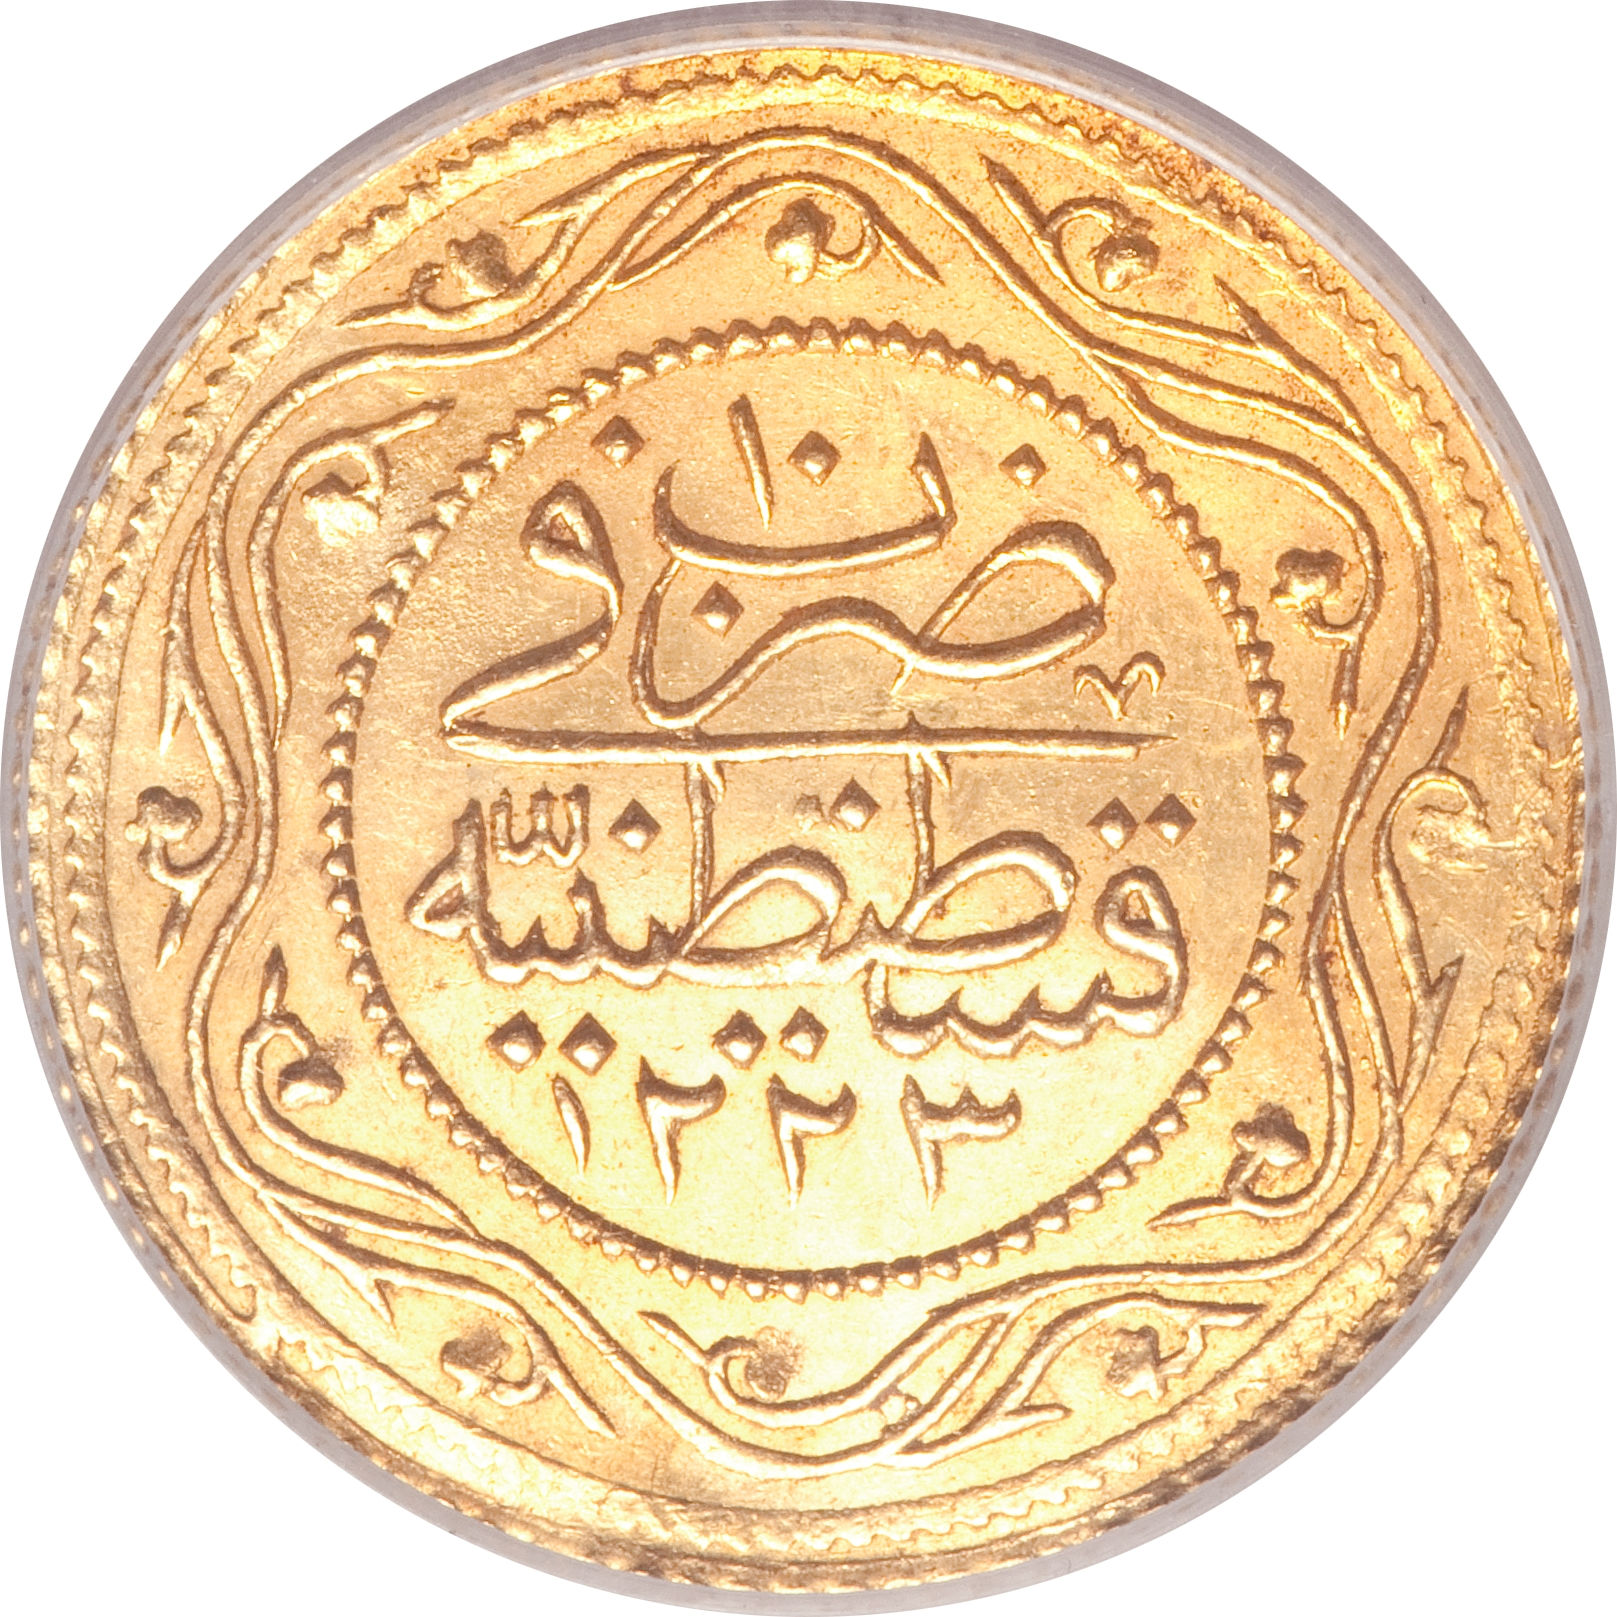 Coin from Tunis and Ottoman - ID and dating needed